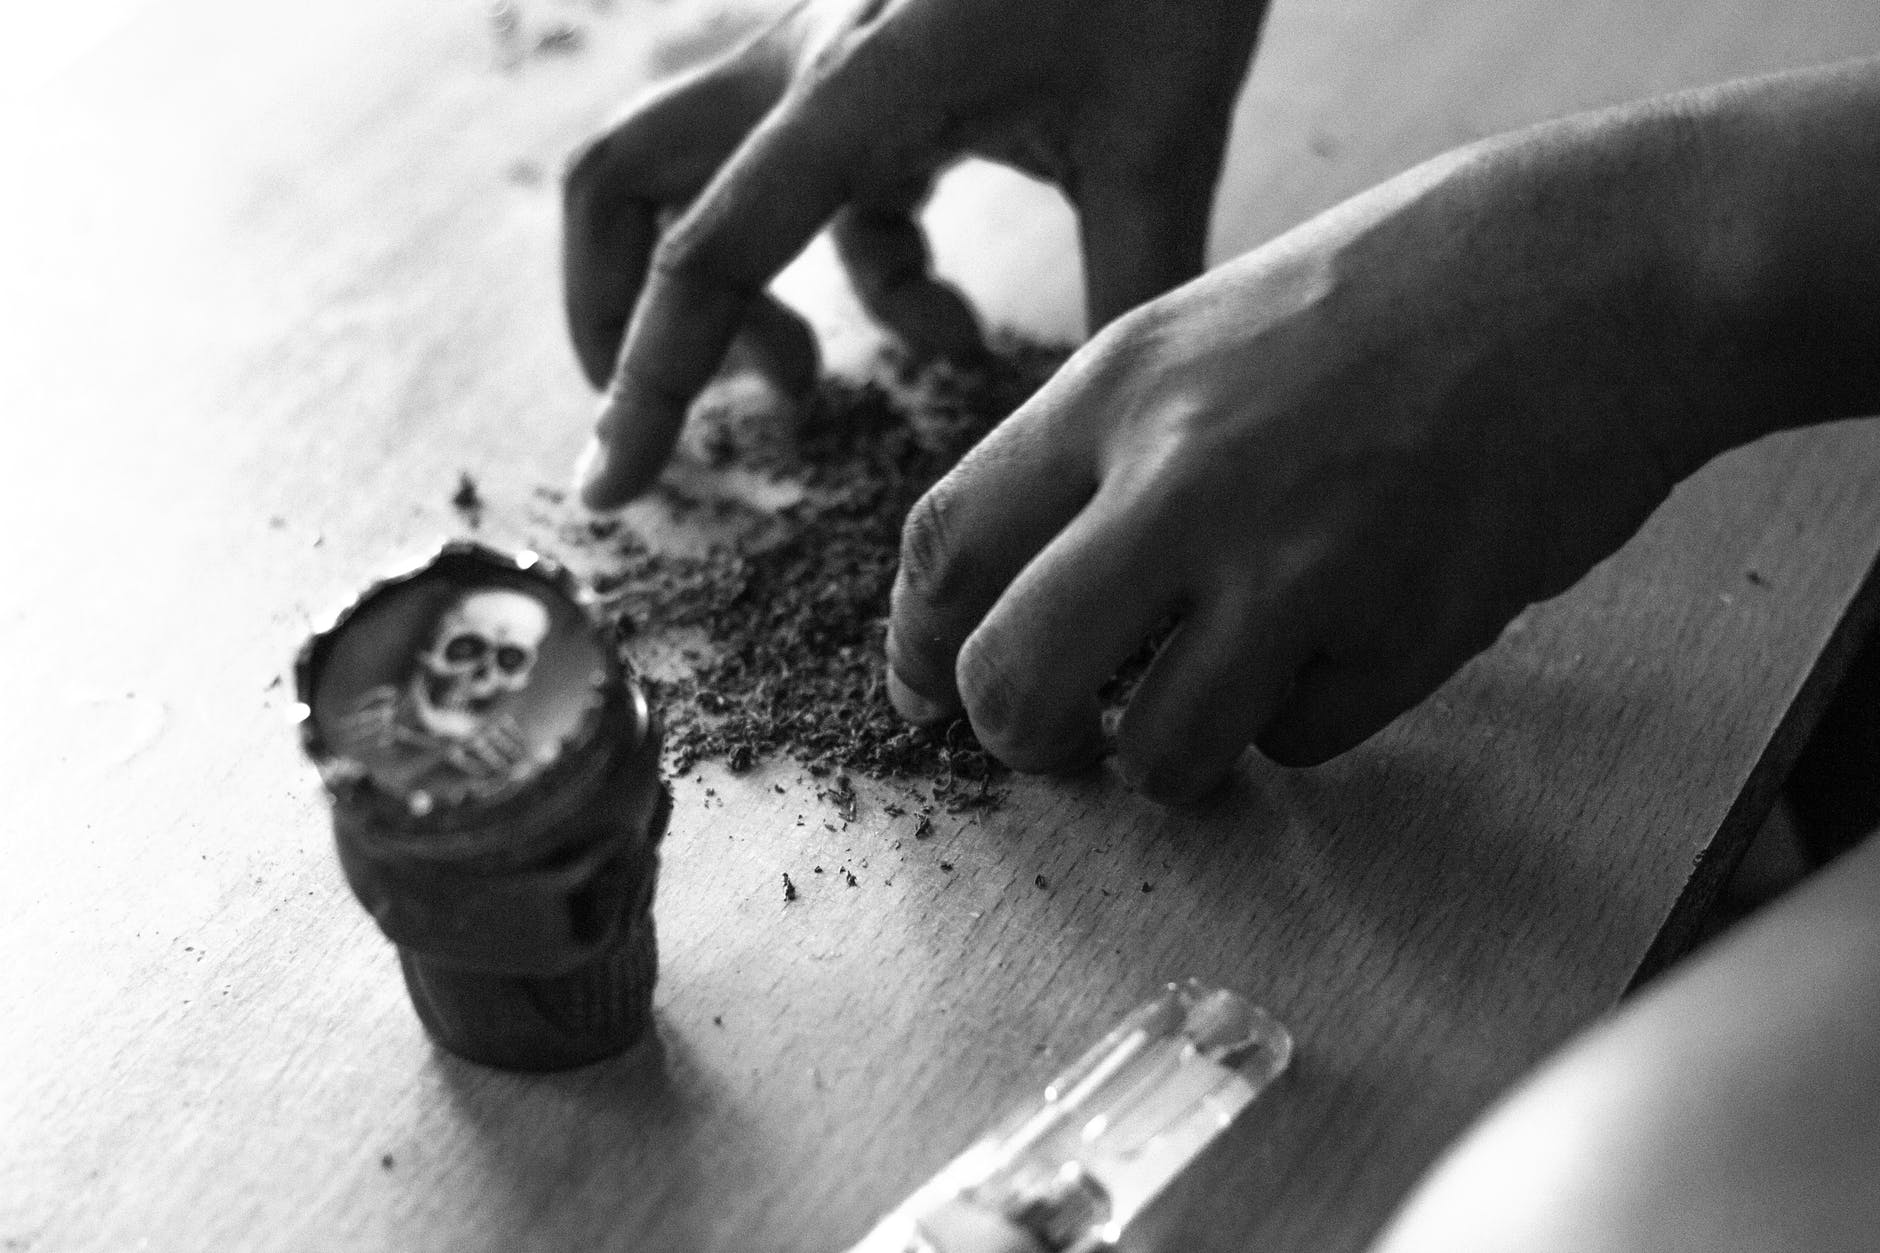 faceless man rolling up cannabis joint